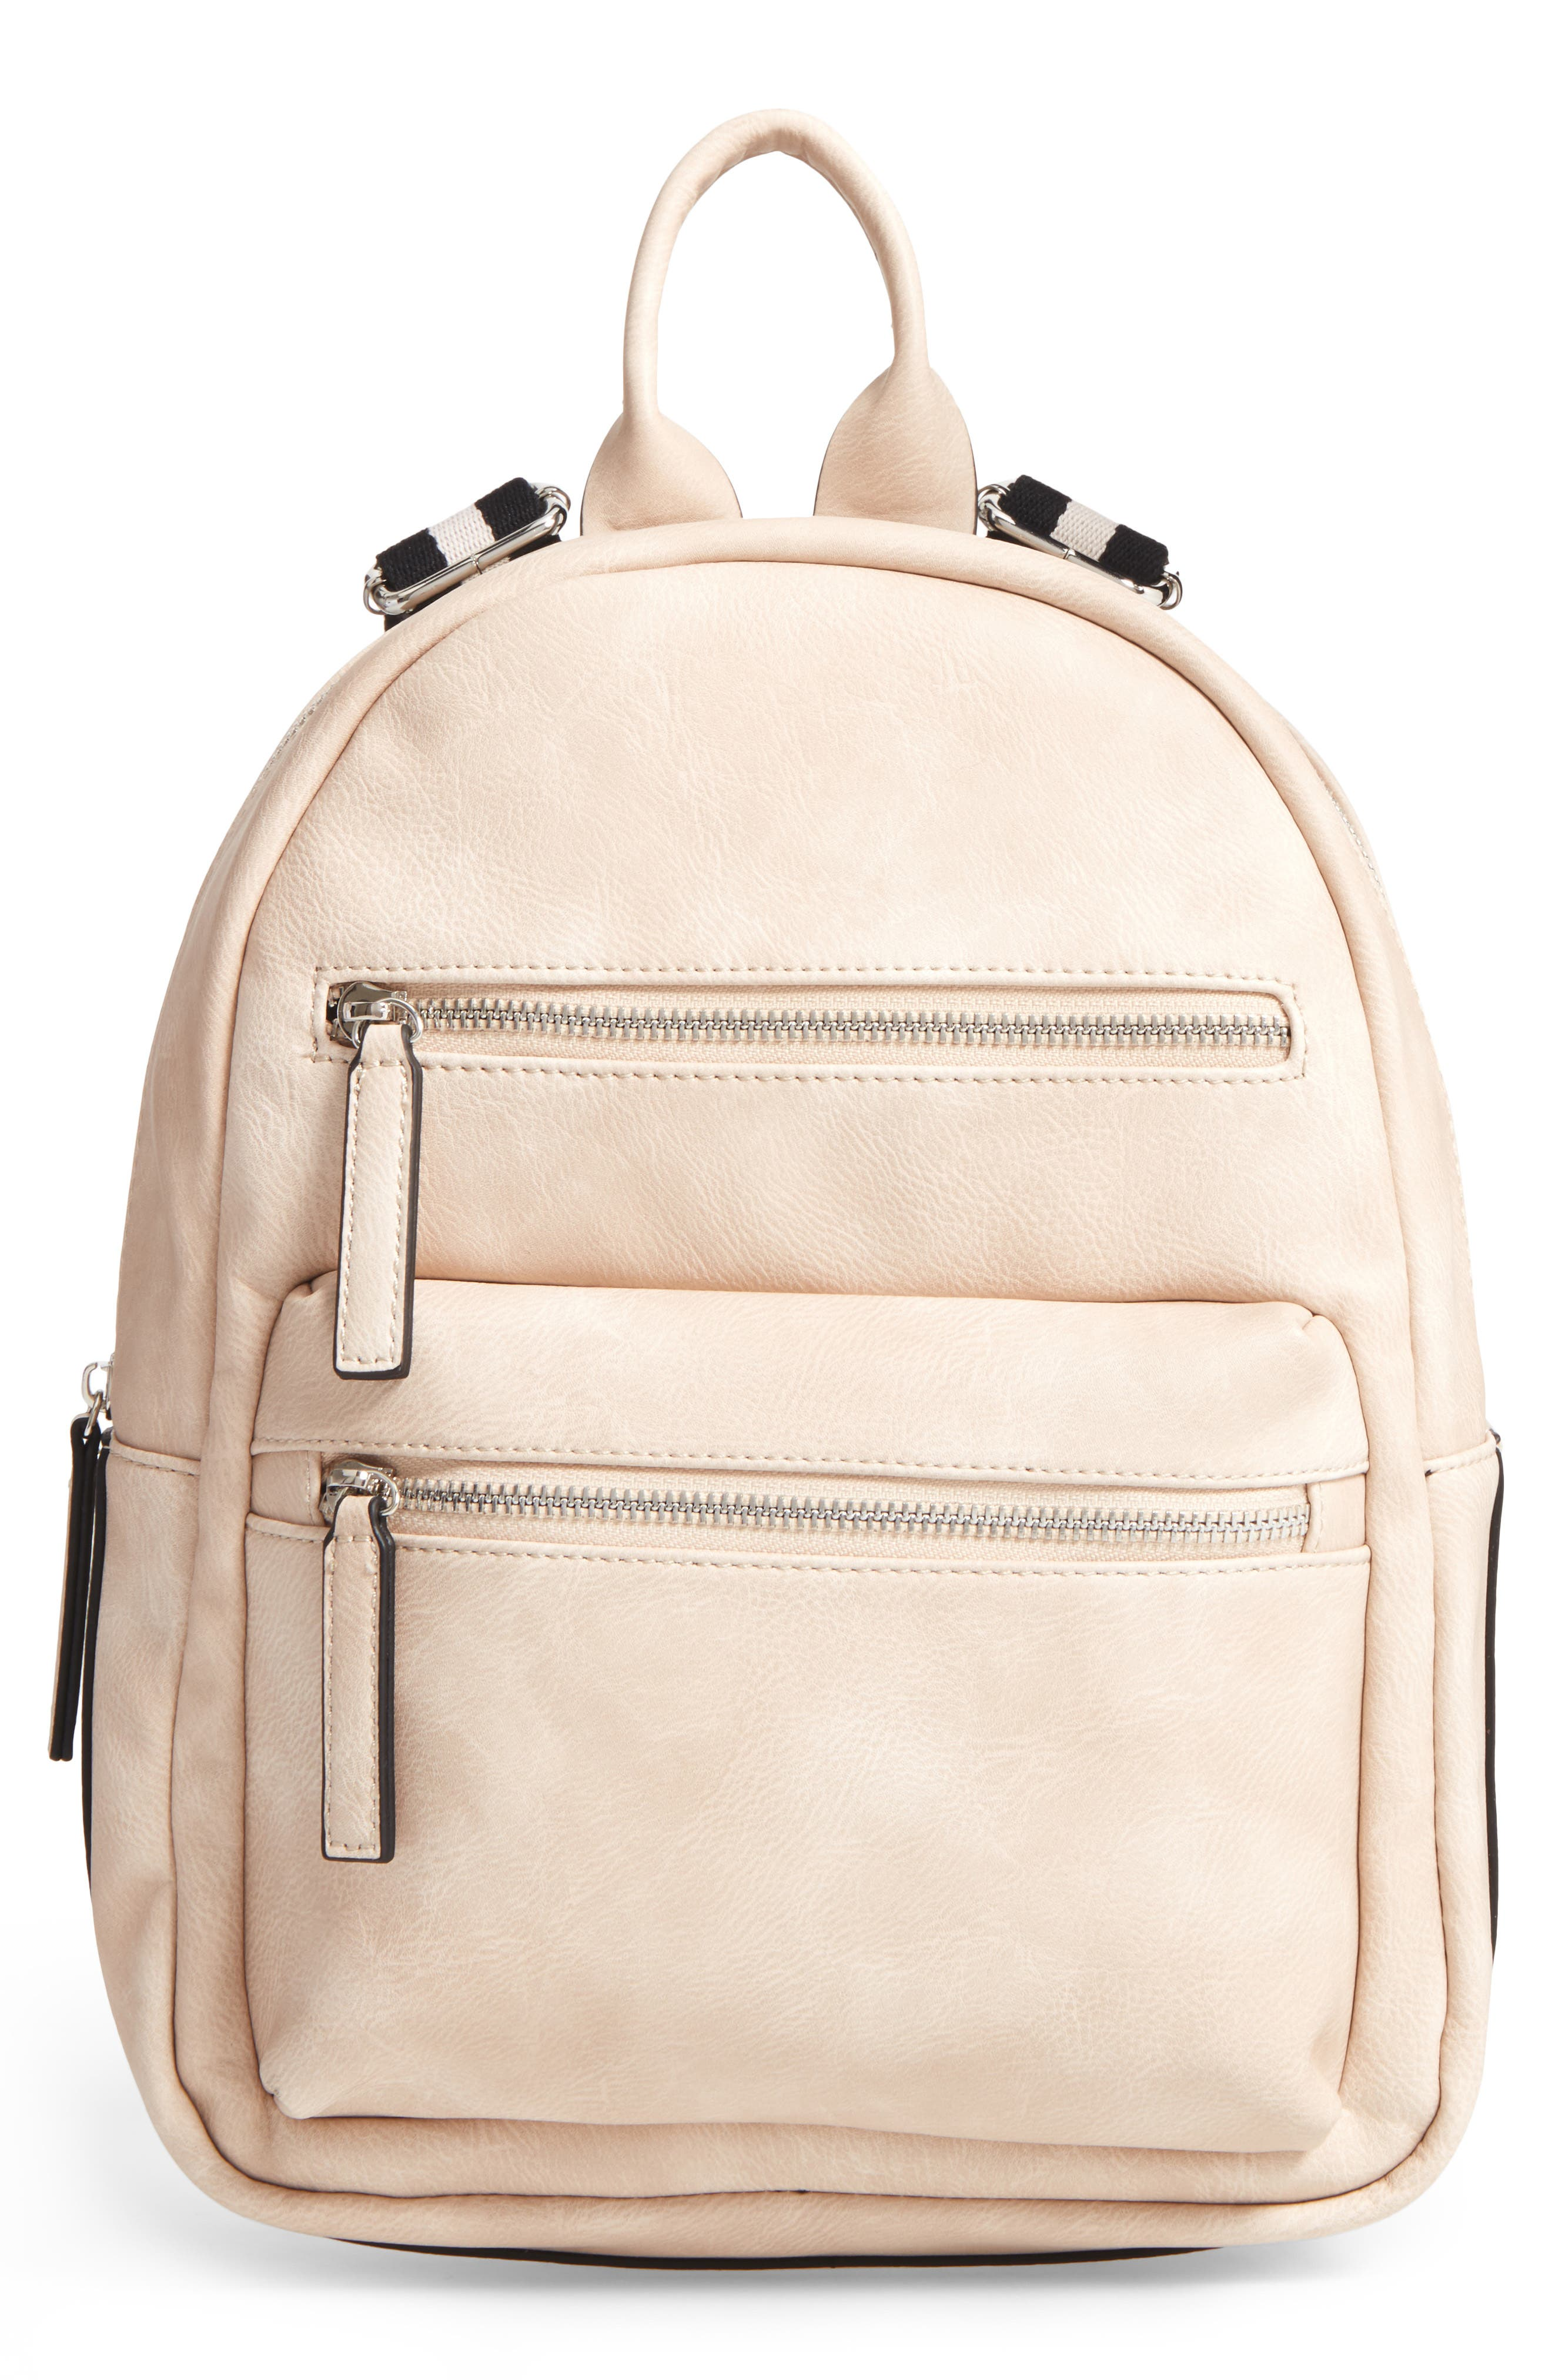 Phase 3 Faux Leather Backpack